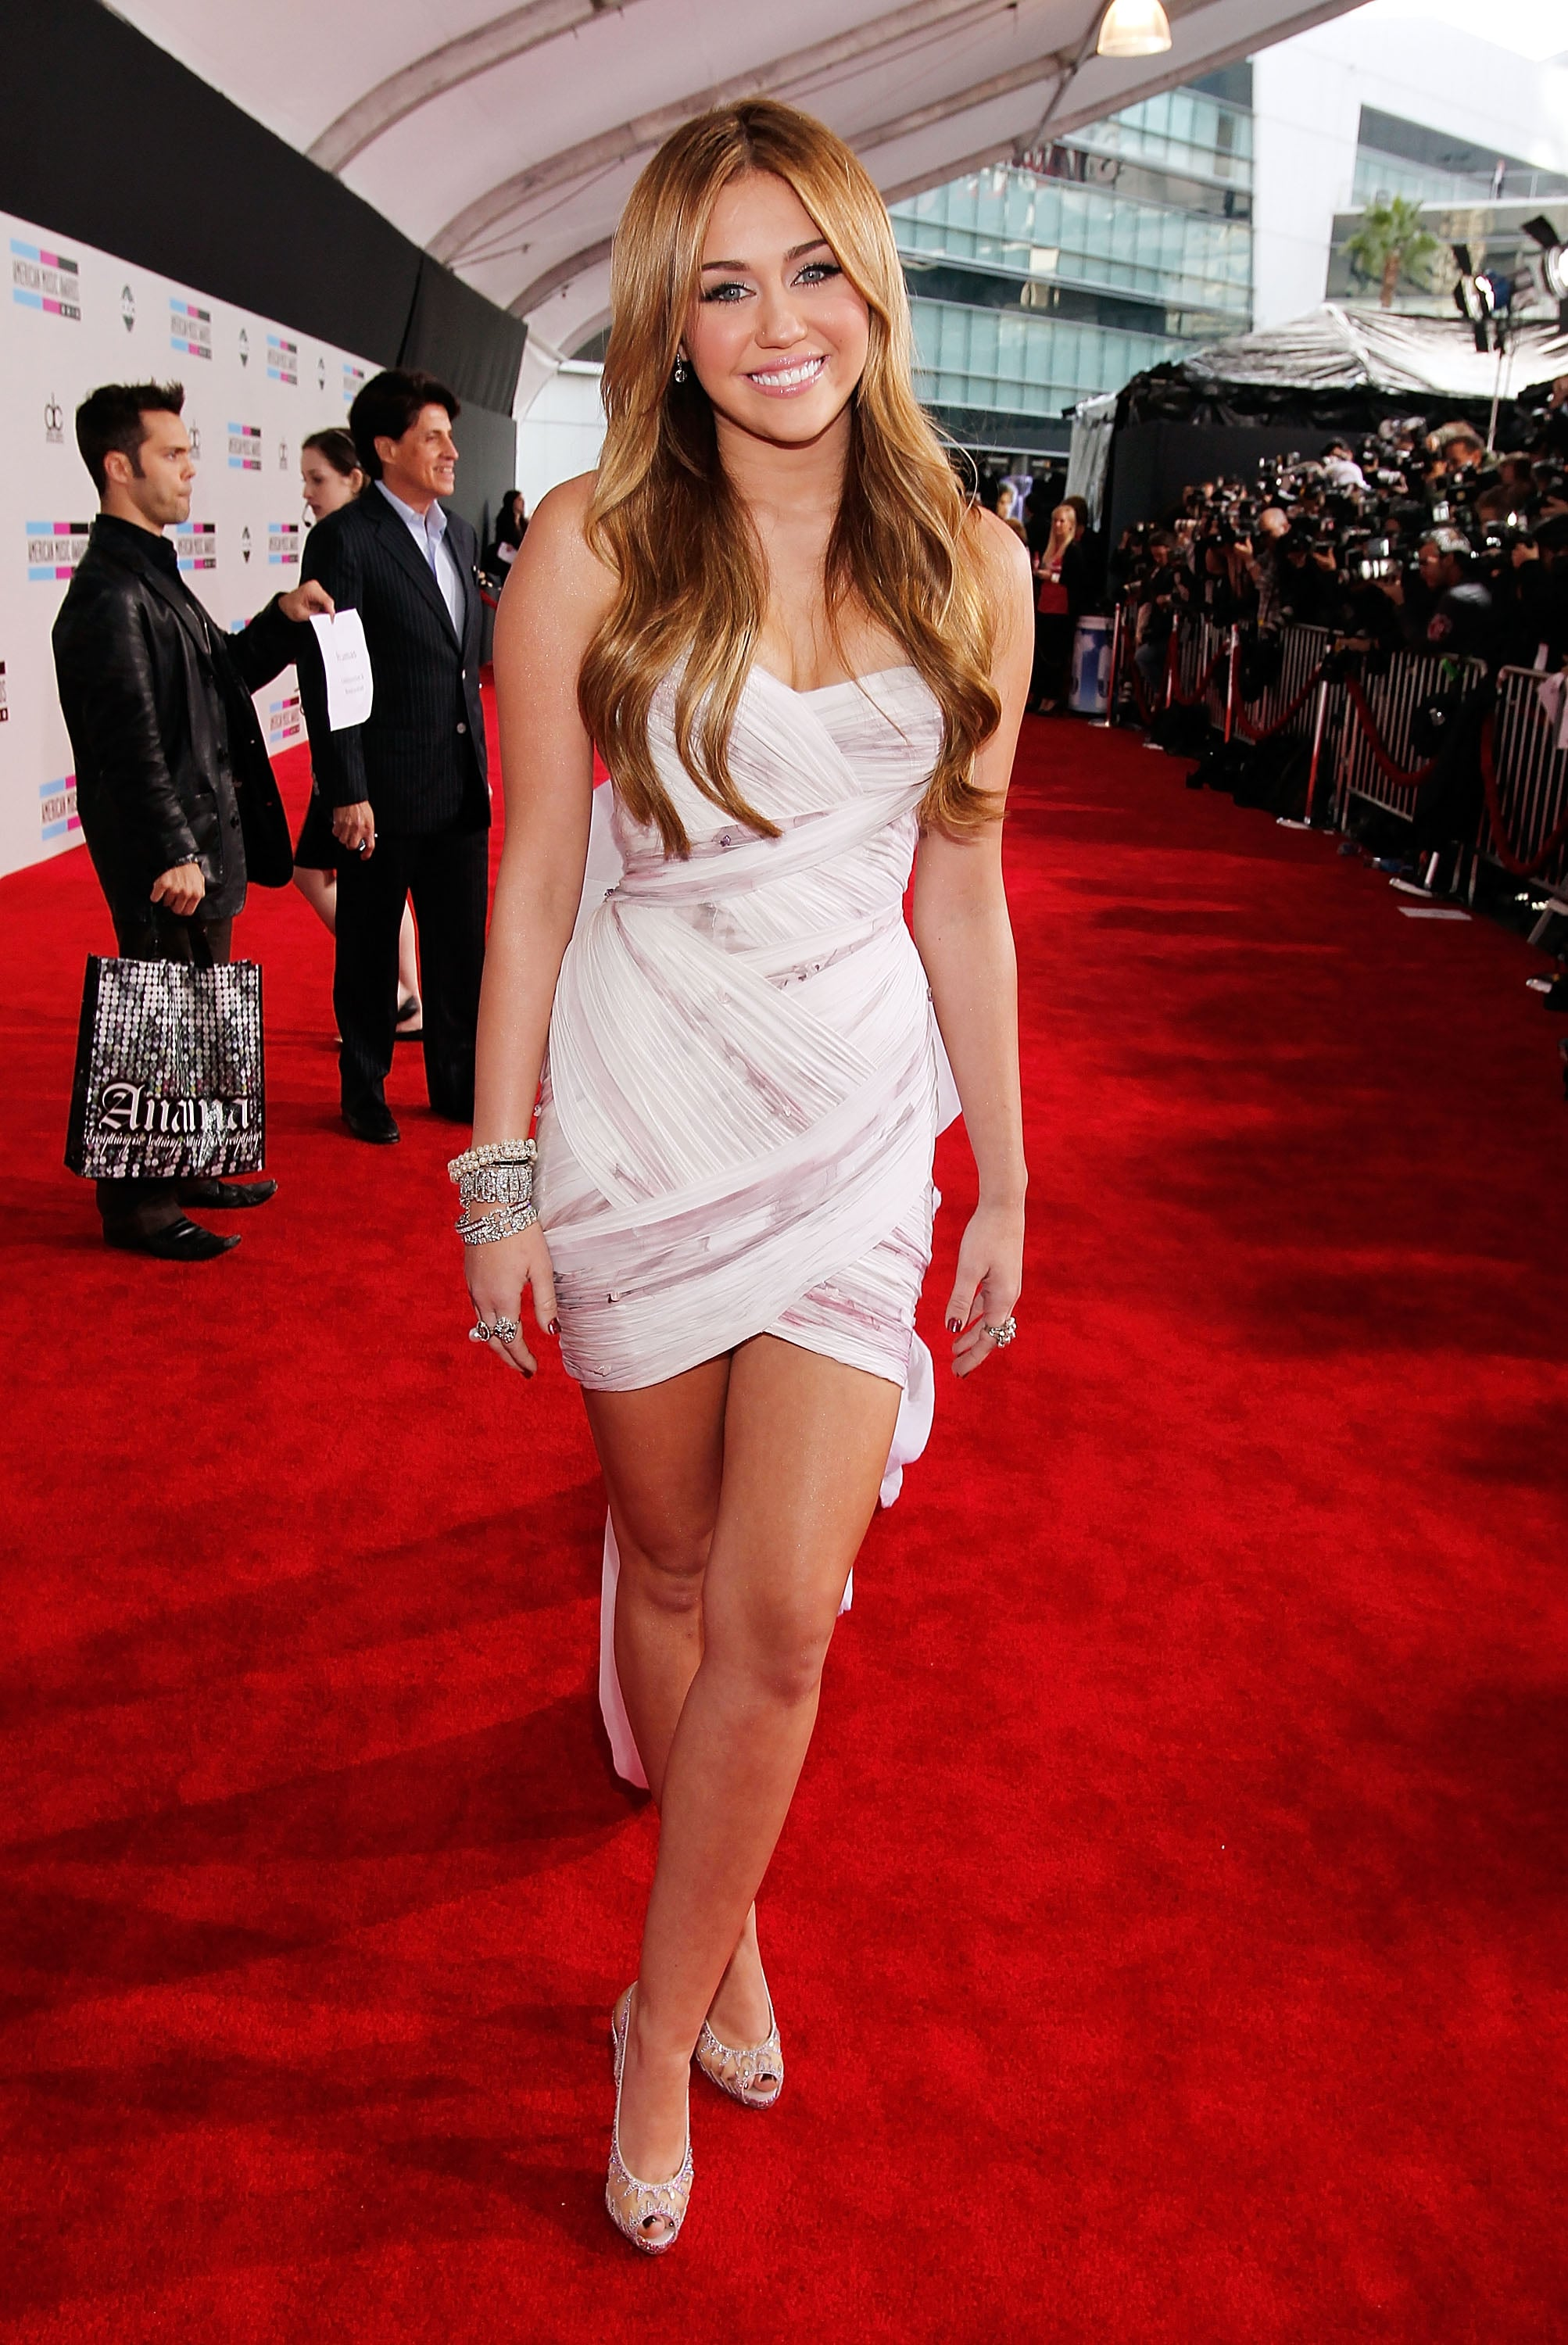 Pictures of Miley Cyrus at the 2010 American Music Awards ...